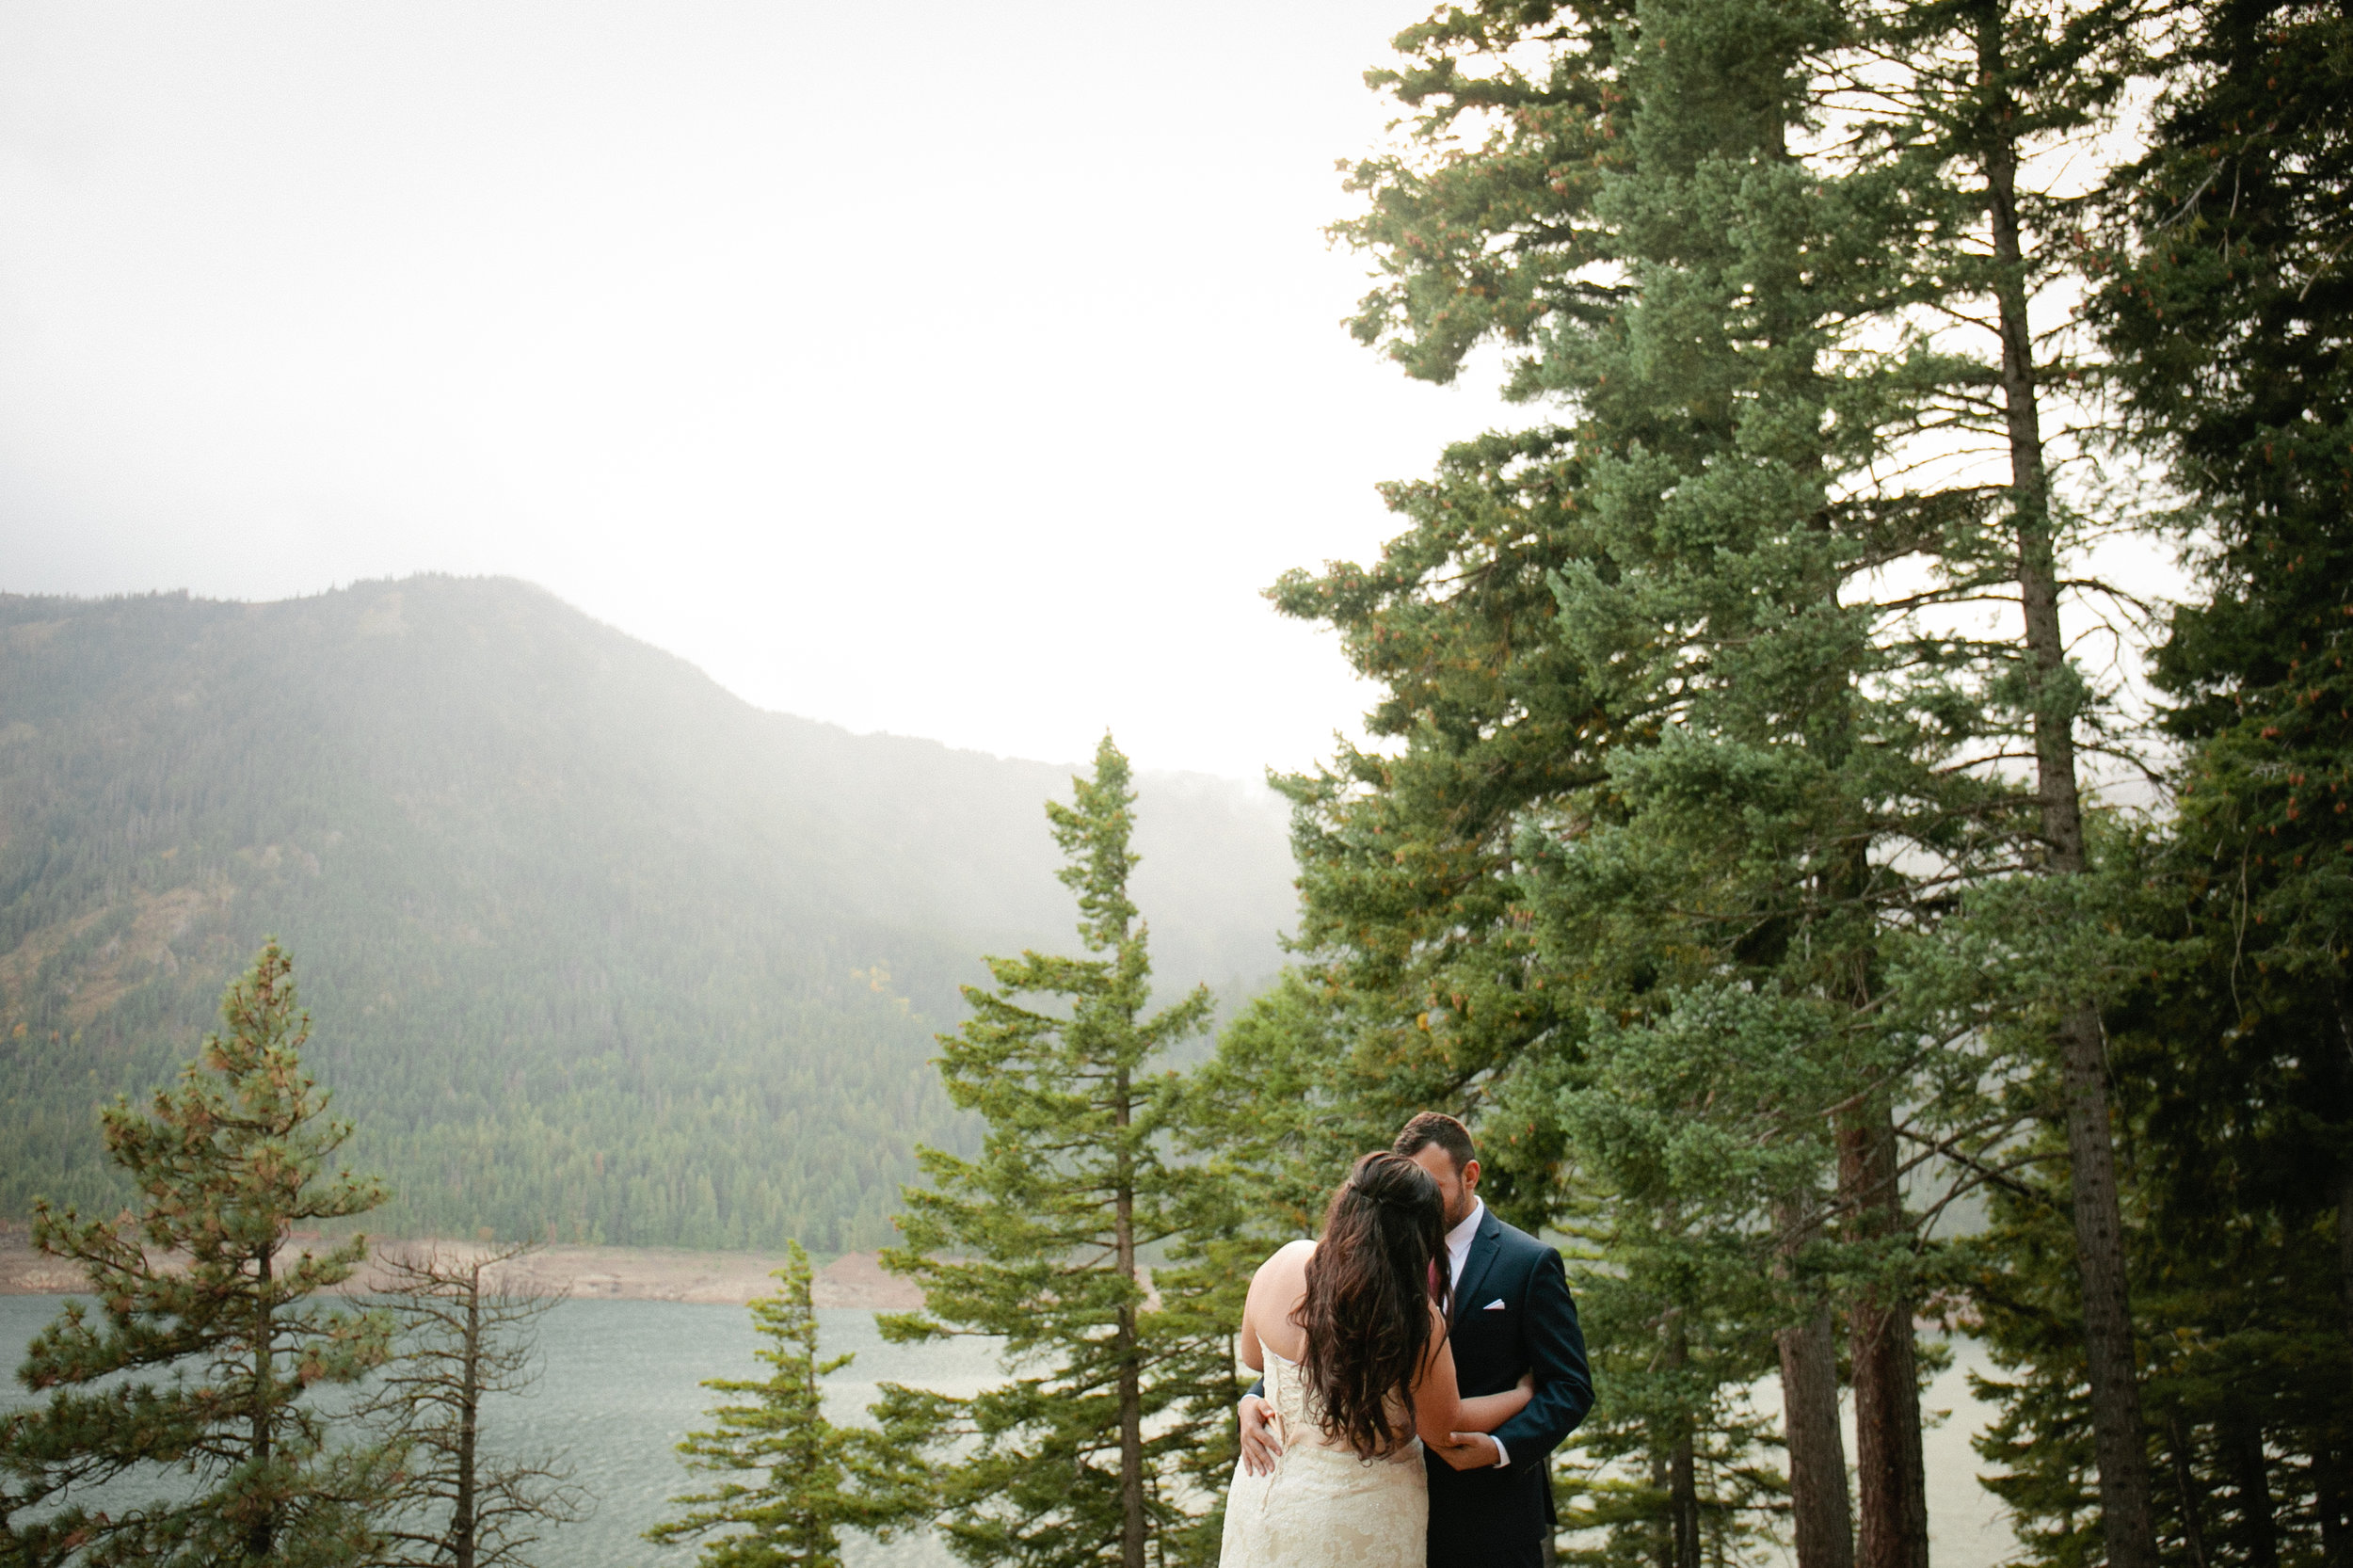 Wedding Photographer Photographers Elopement Travel Destination Romantic Bohemian Lifestyle Candid Creative Traveling Salt Lake Photography WA PNW Oregon Seattle Portland